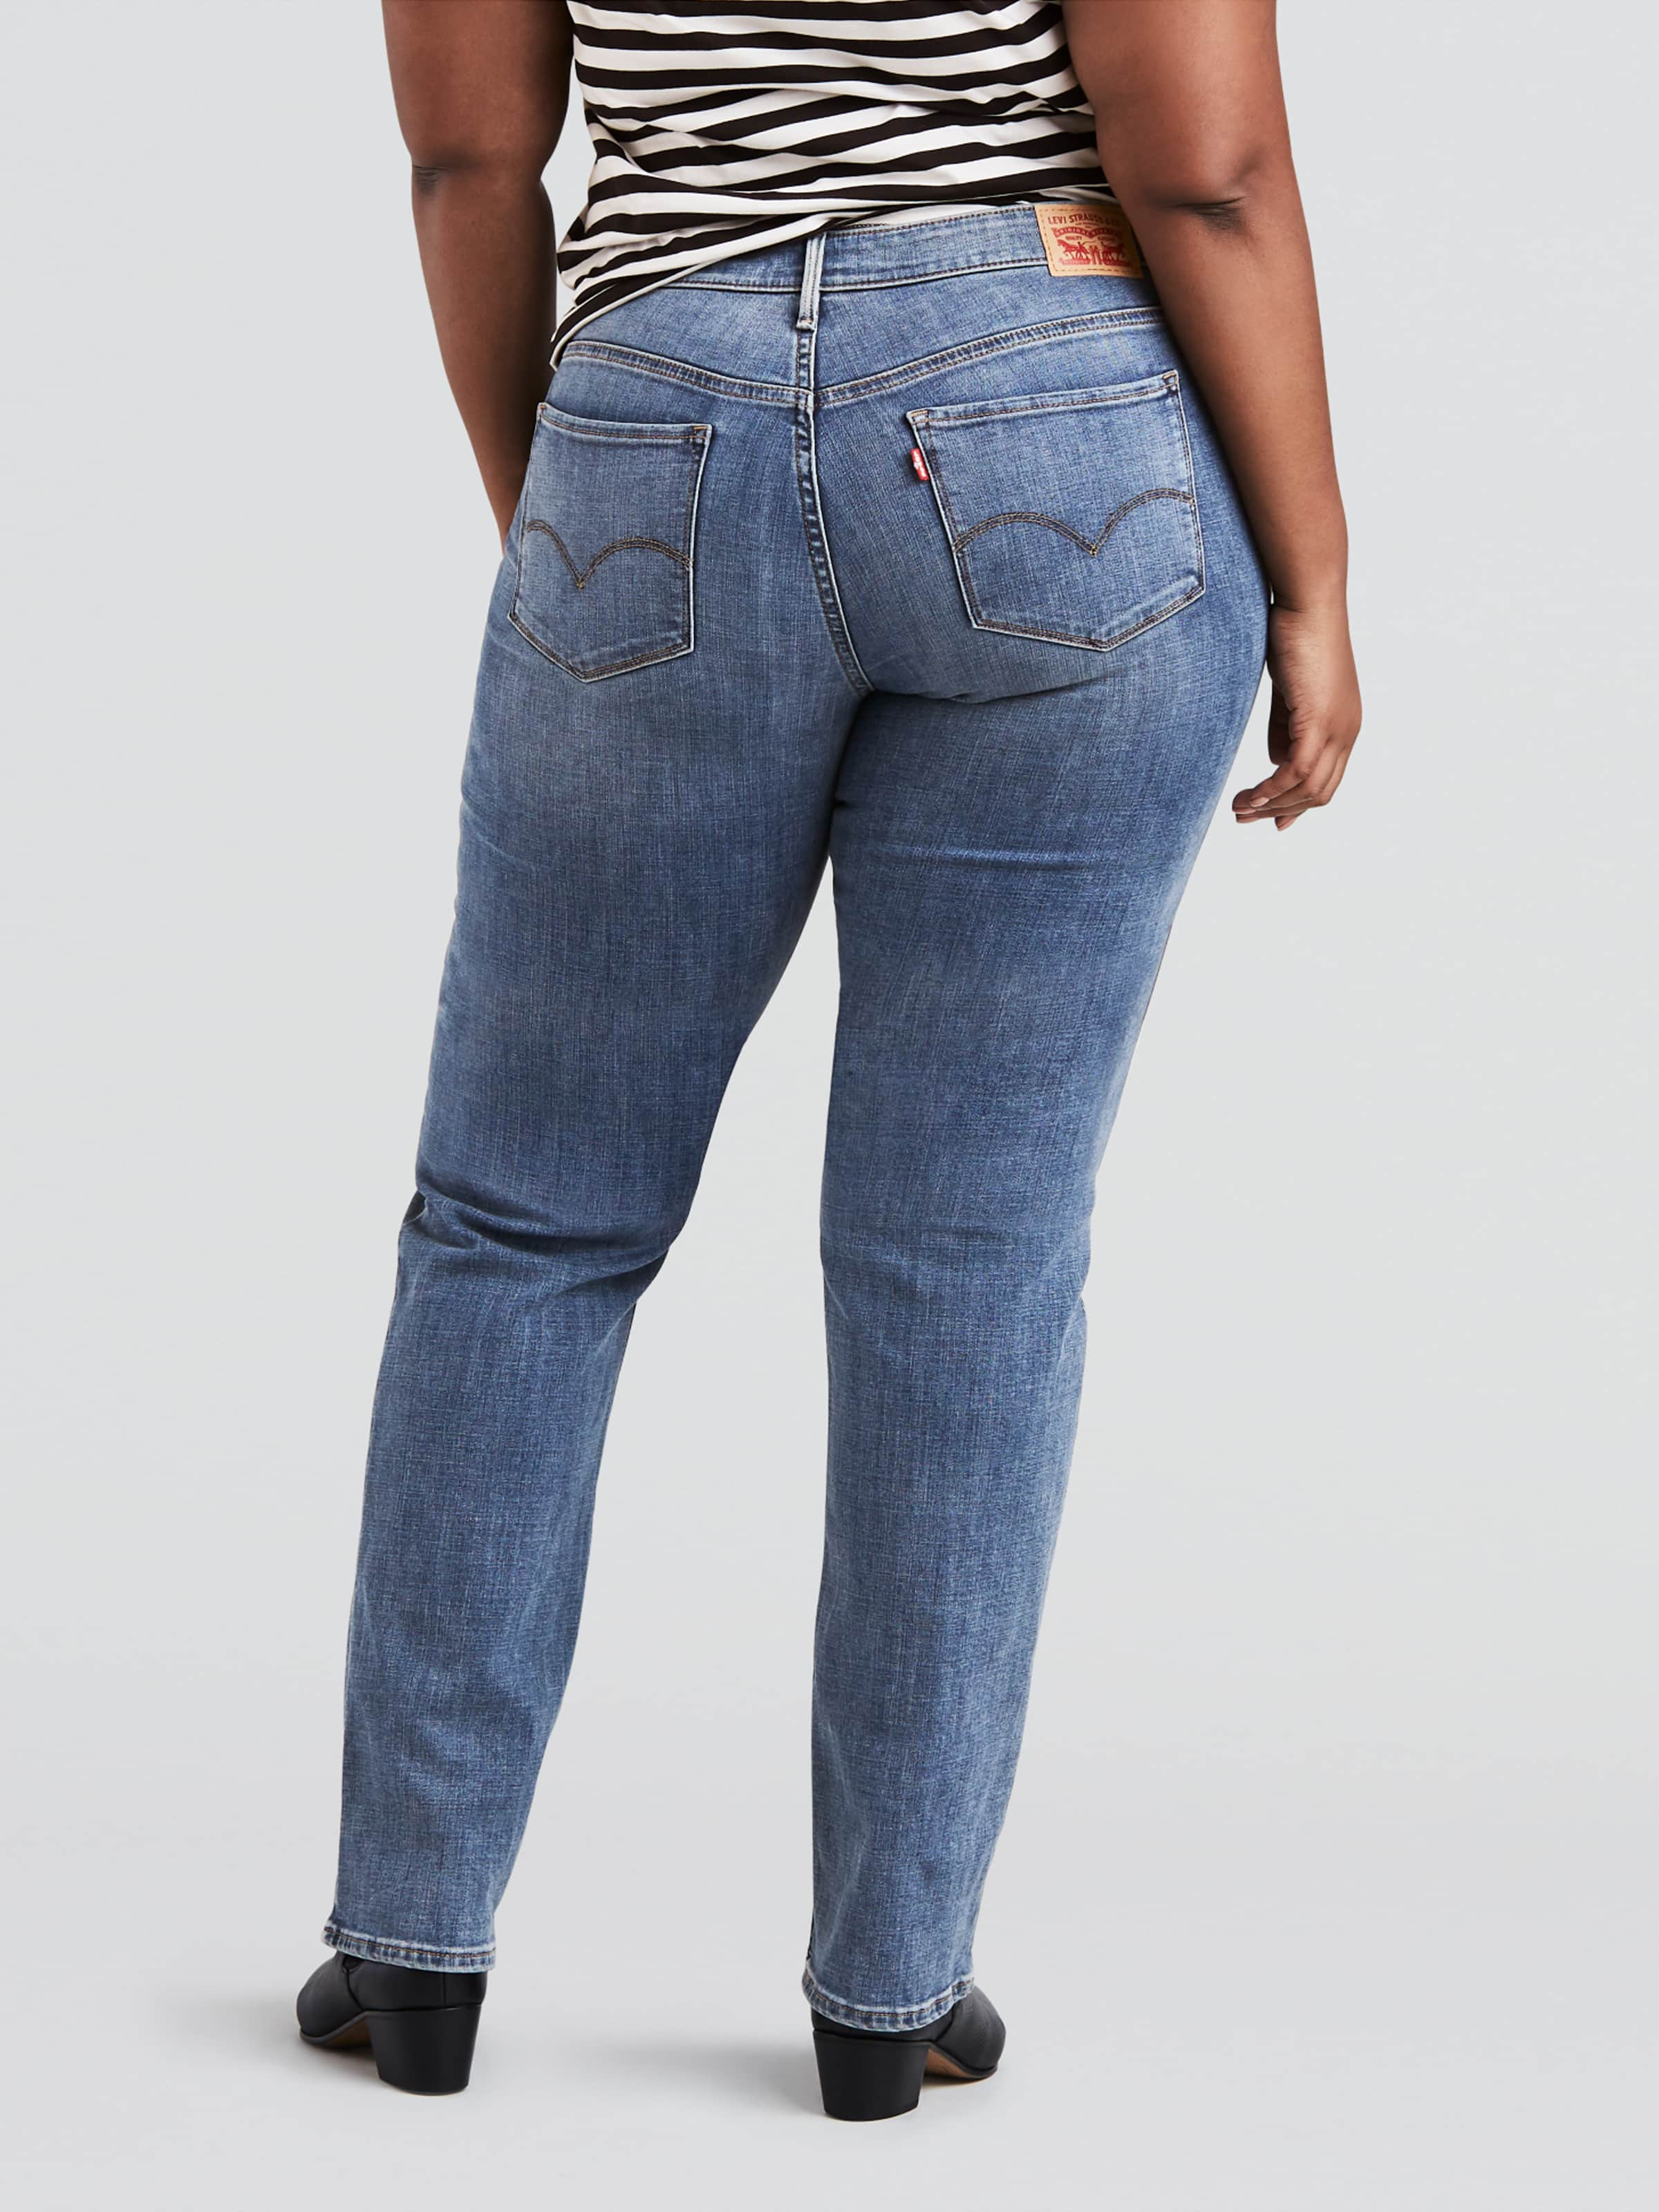 dee265d0242 ... Image for Levis 311 Plus Straight In Indigo Anomaly from Just Jeans ...